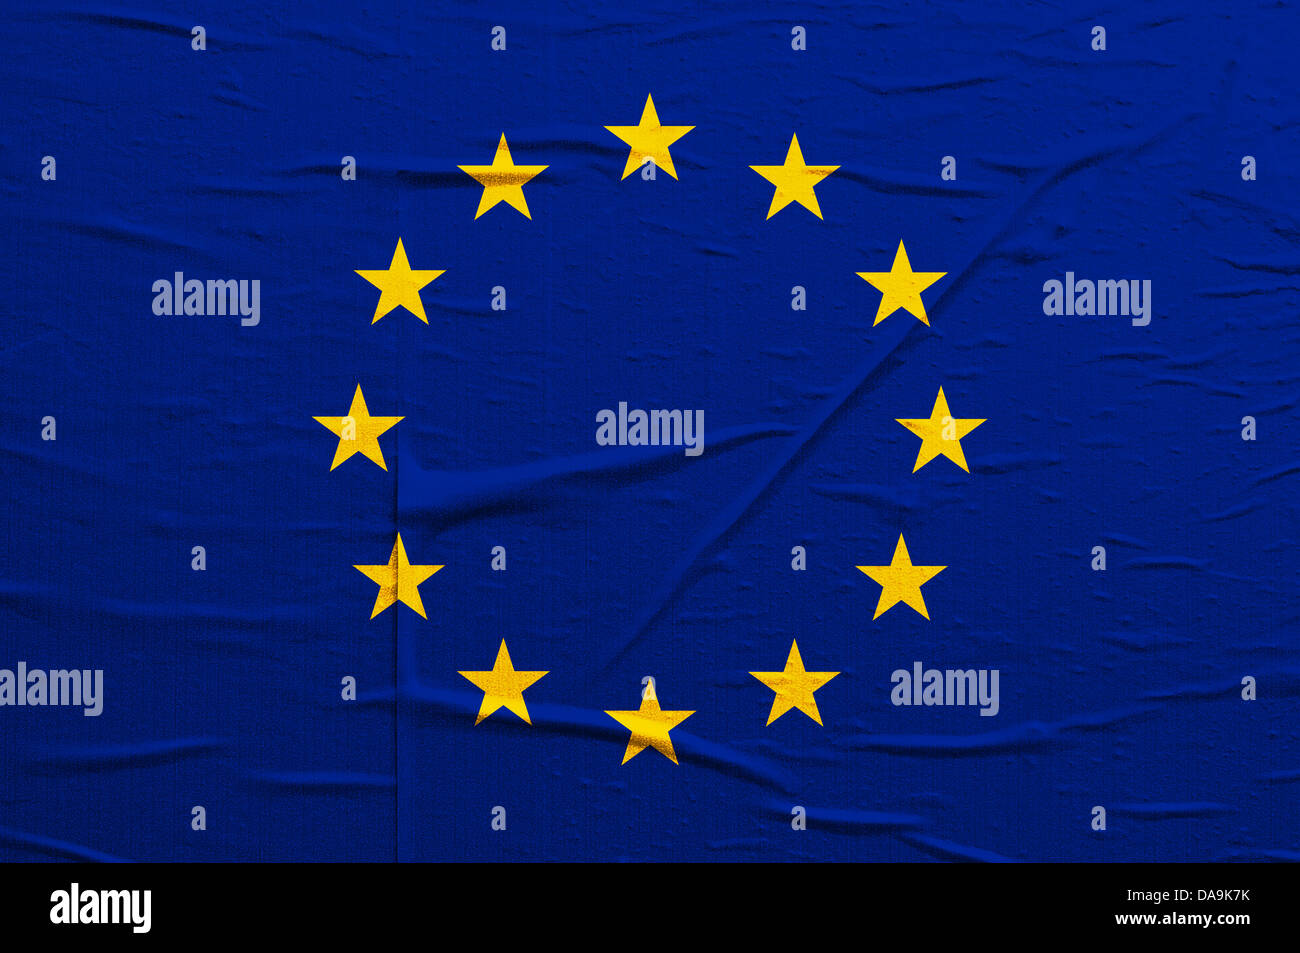 Grunge blue European Union flag with yellow stars overlaying a grungy texture - Stock Image